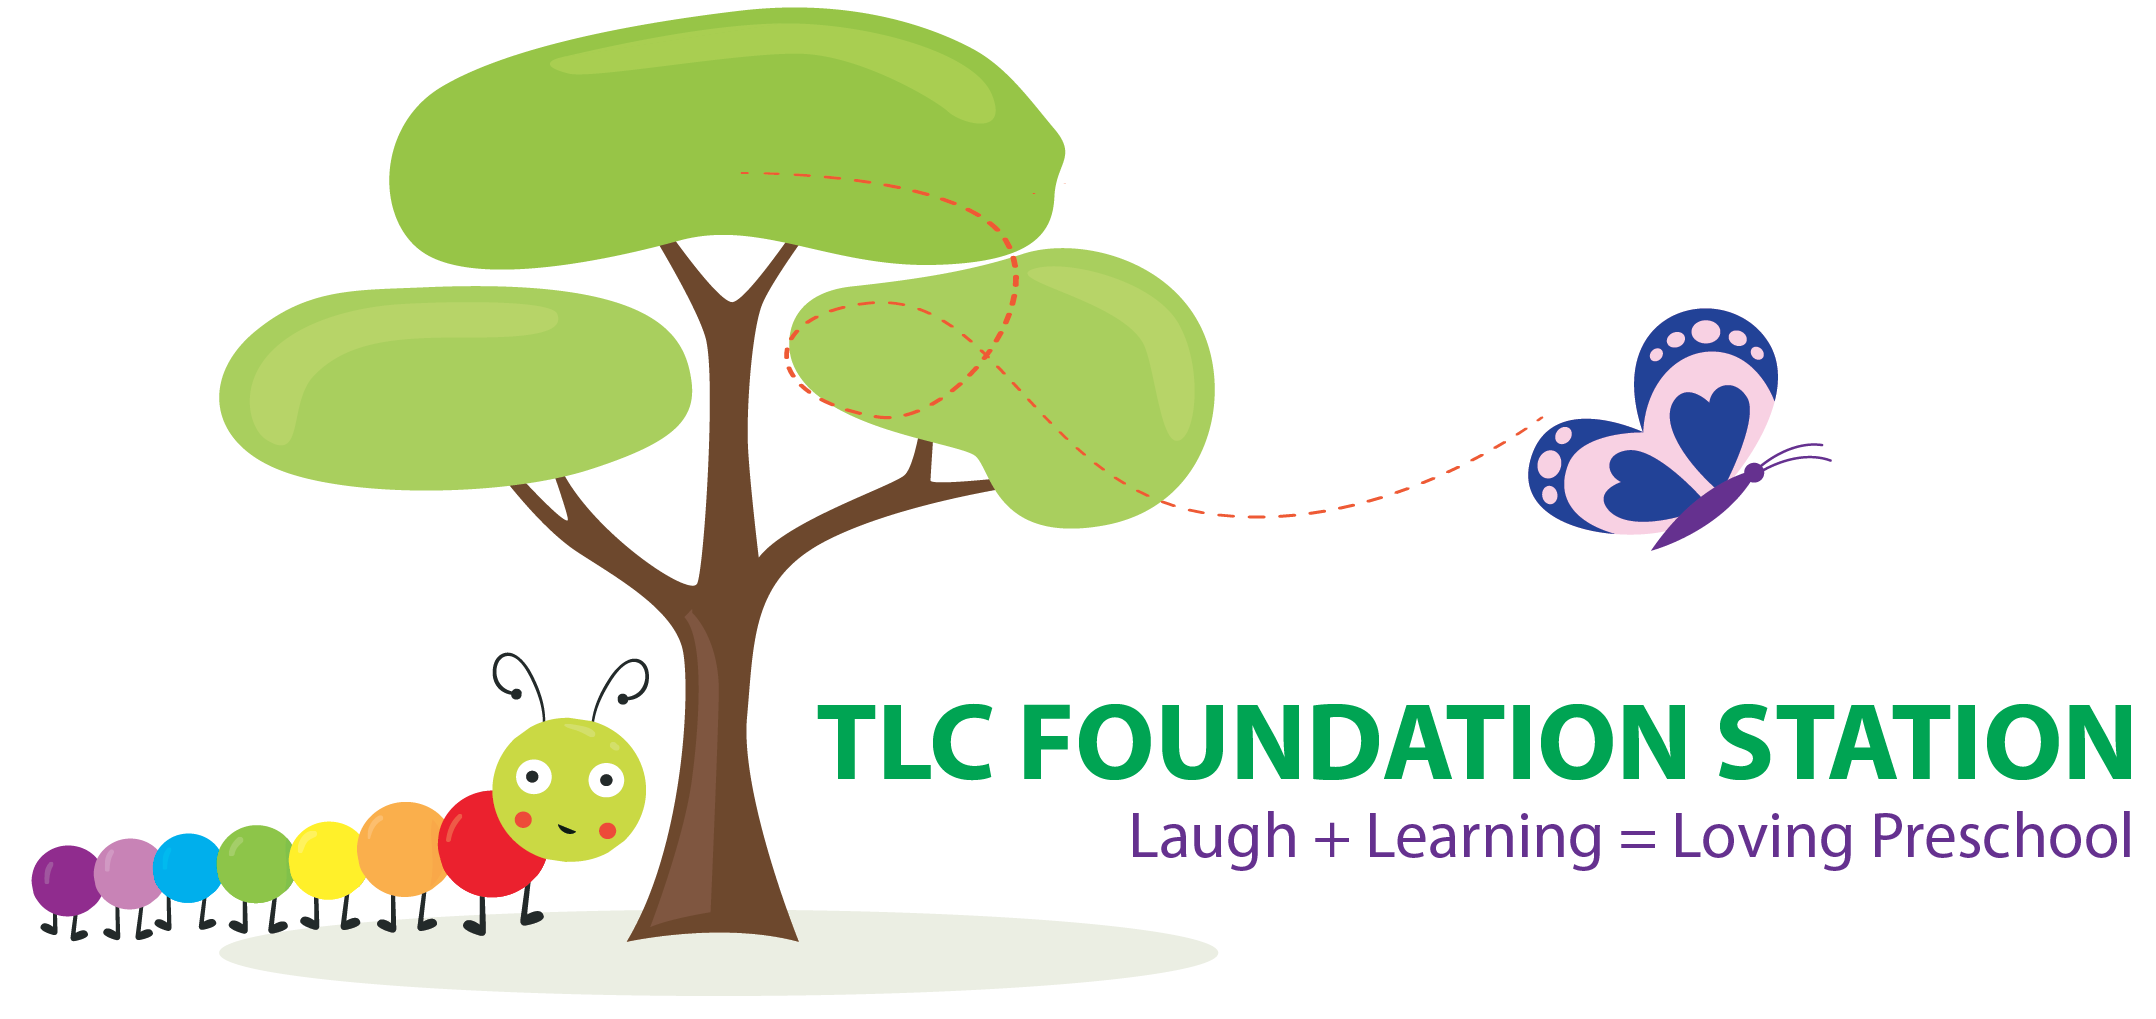 TLC Foundation Station Preschool